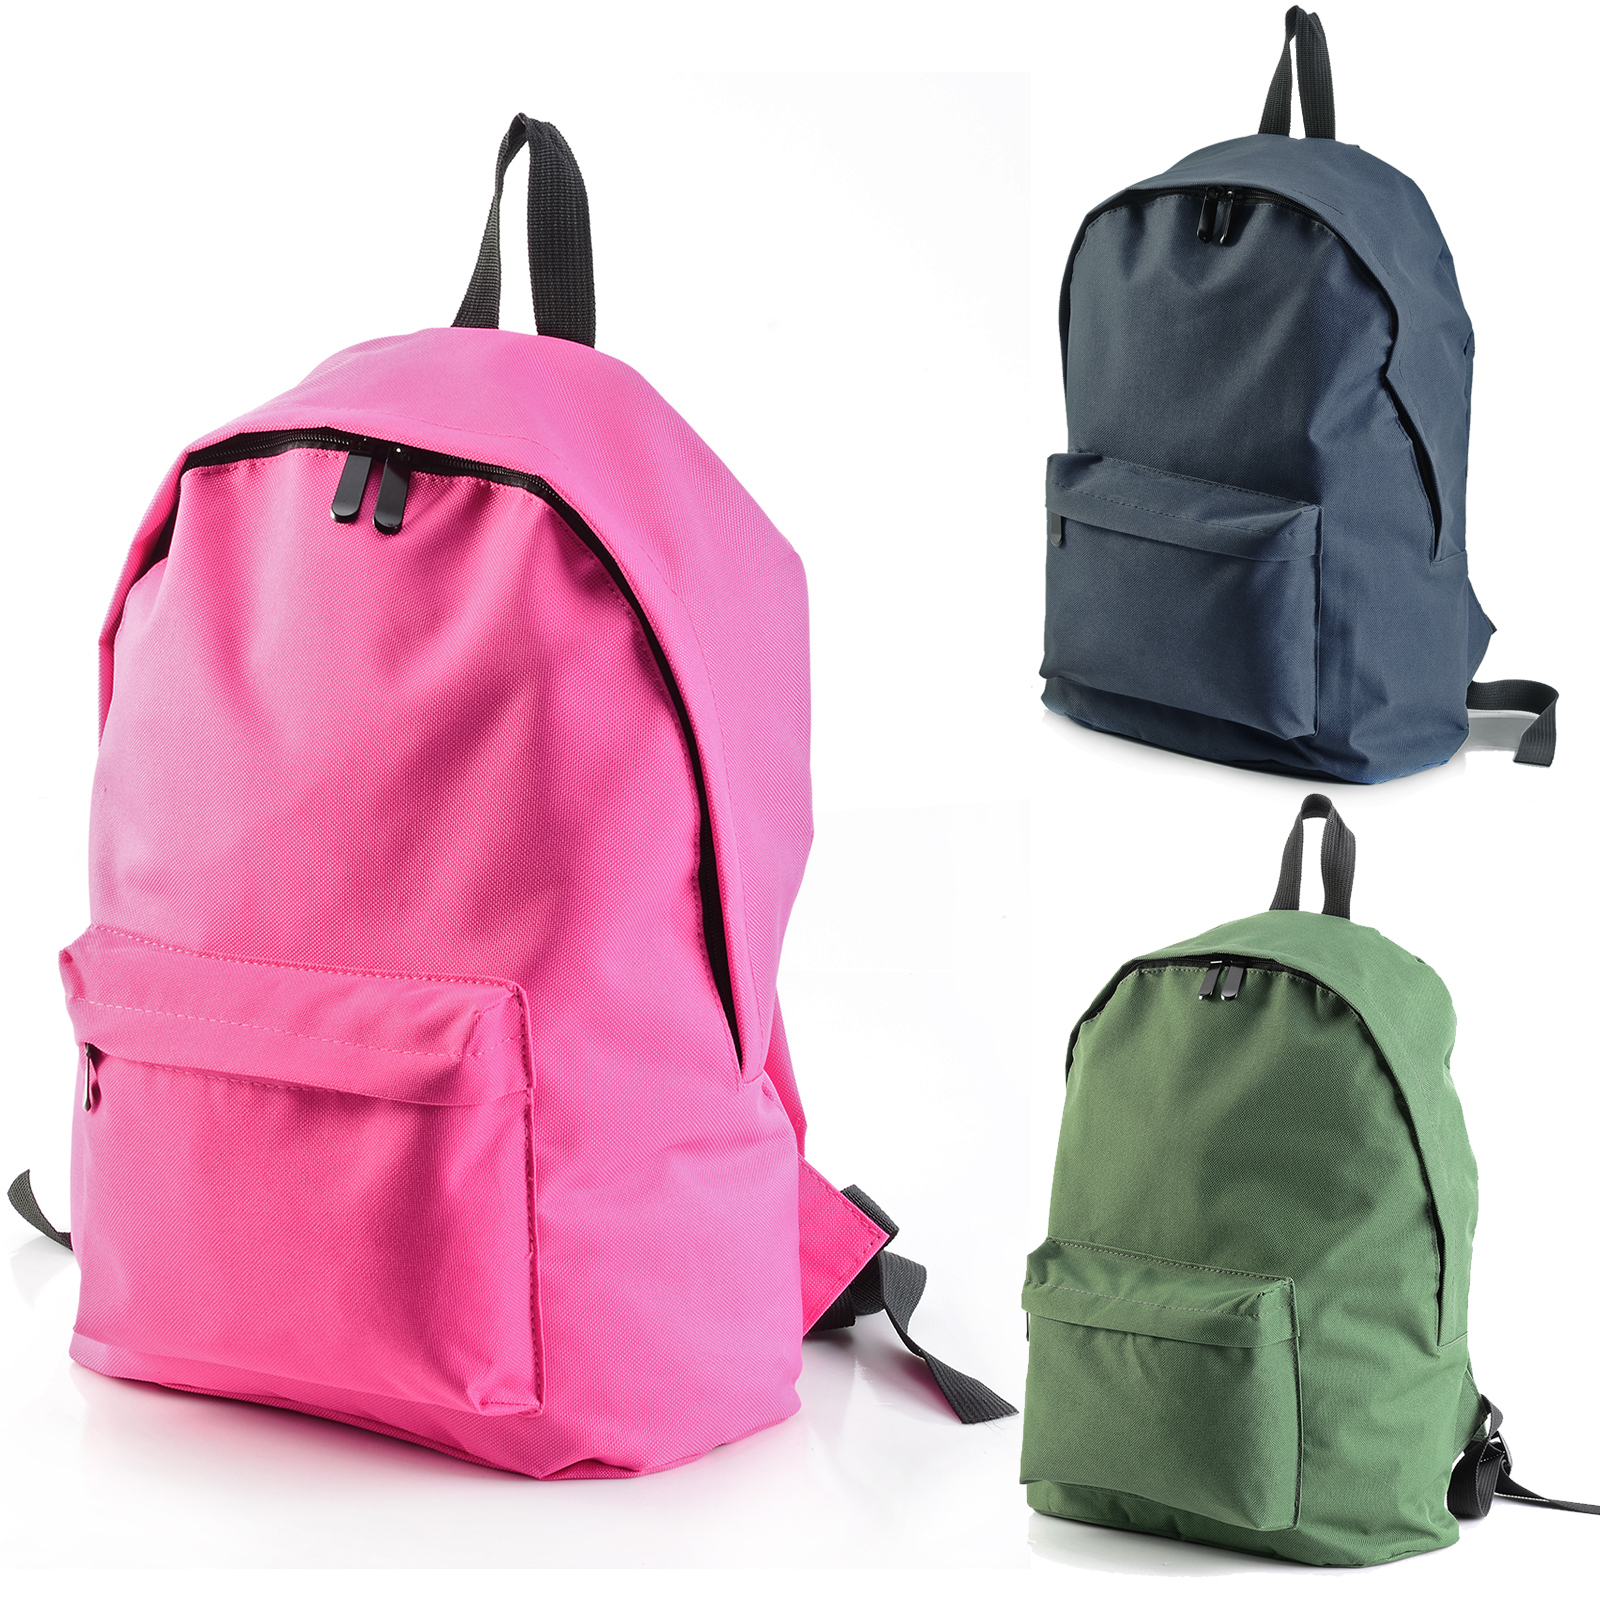 Details about Mens Boys Girls Retro Backpack Rucksack School College Travel  Laptop Work Bag 4b705b8406